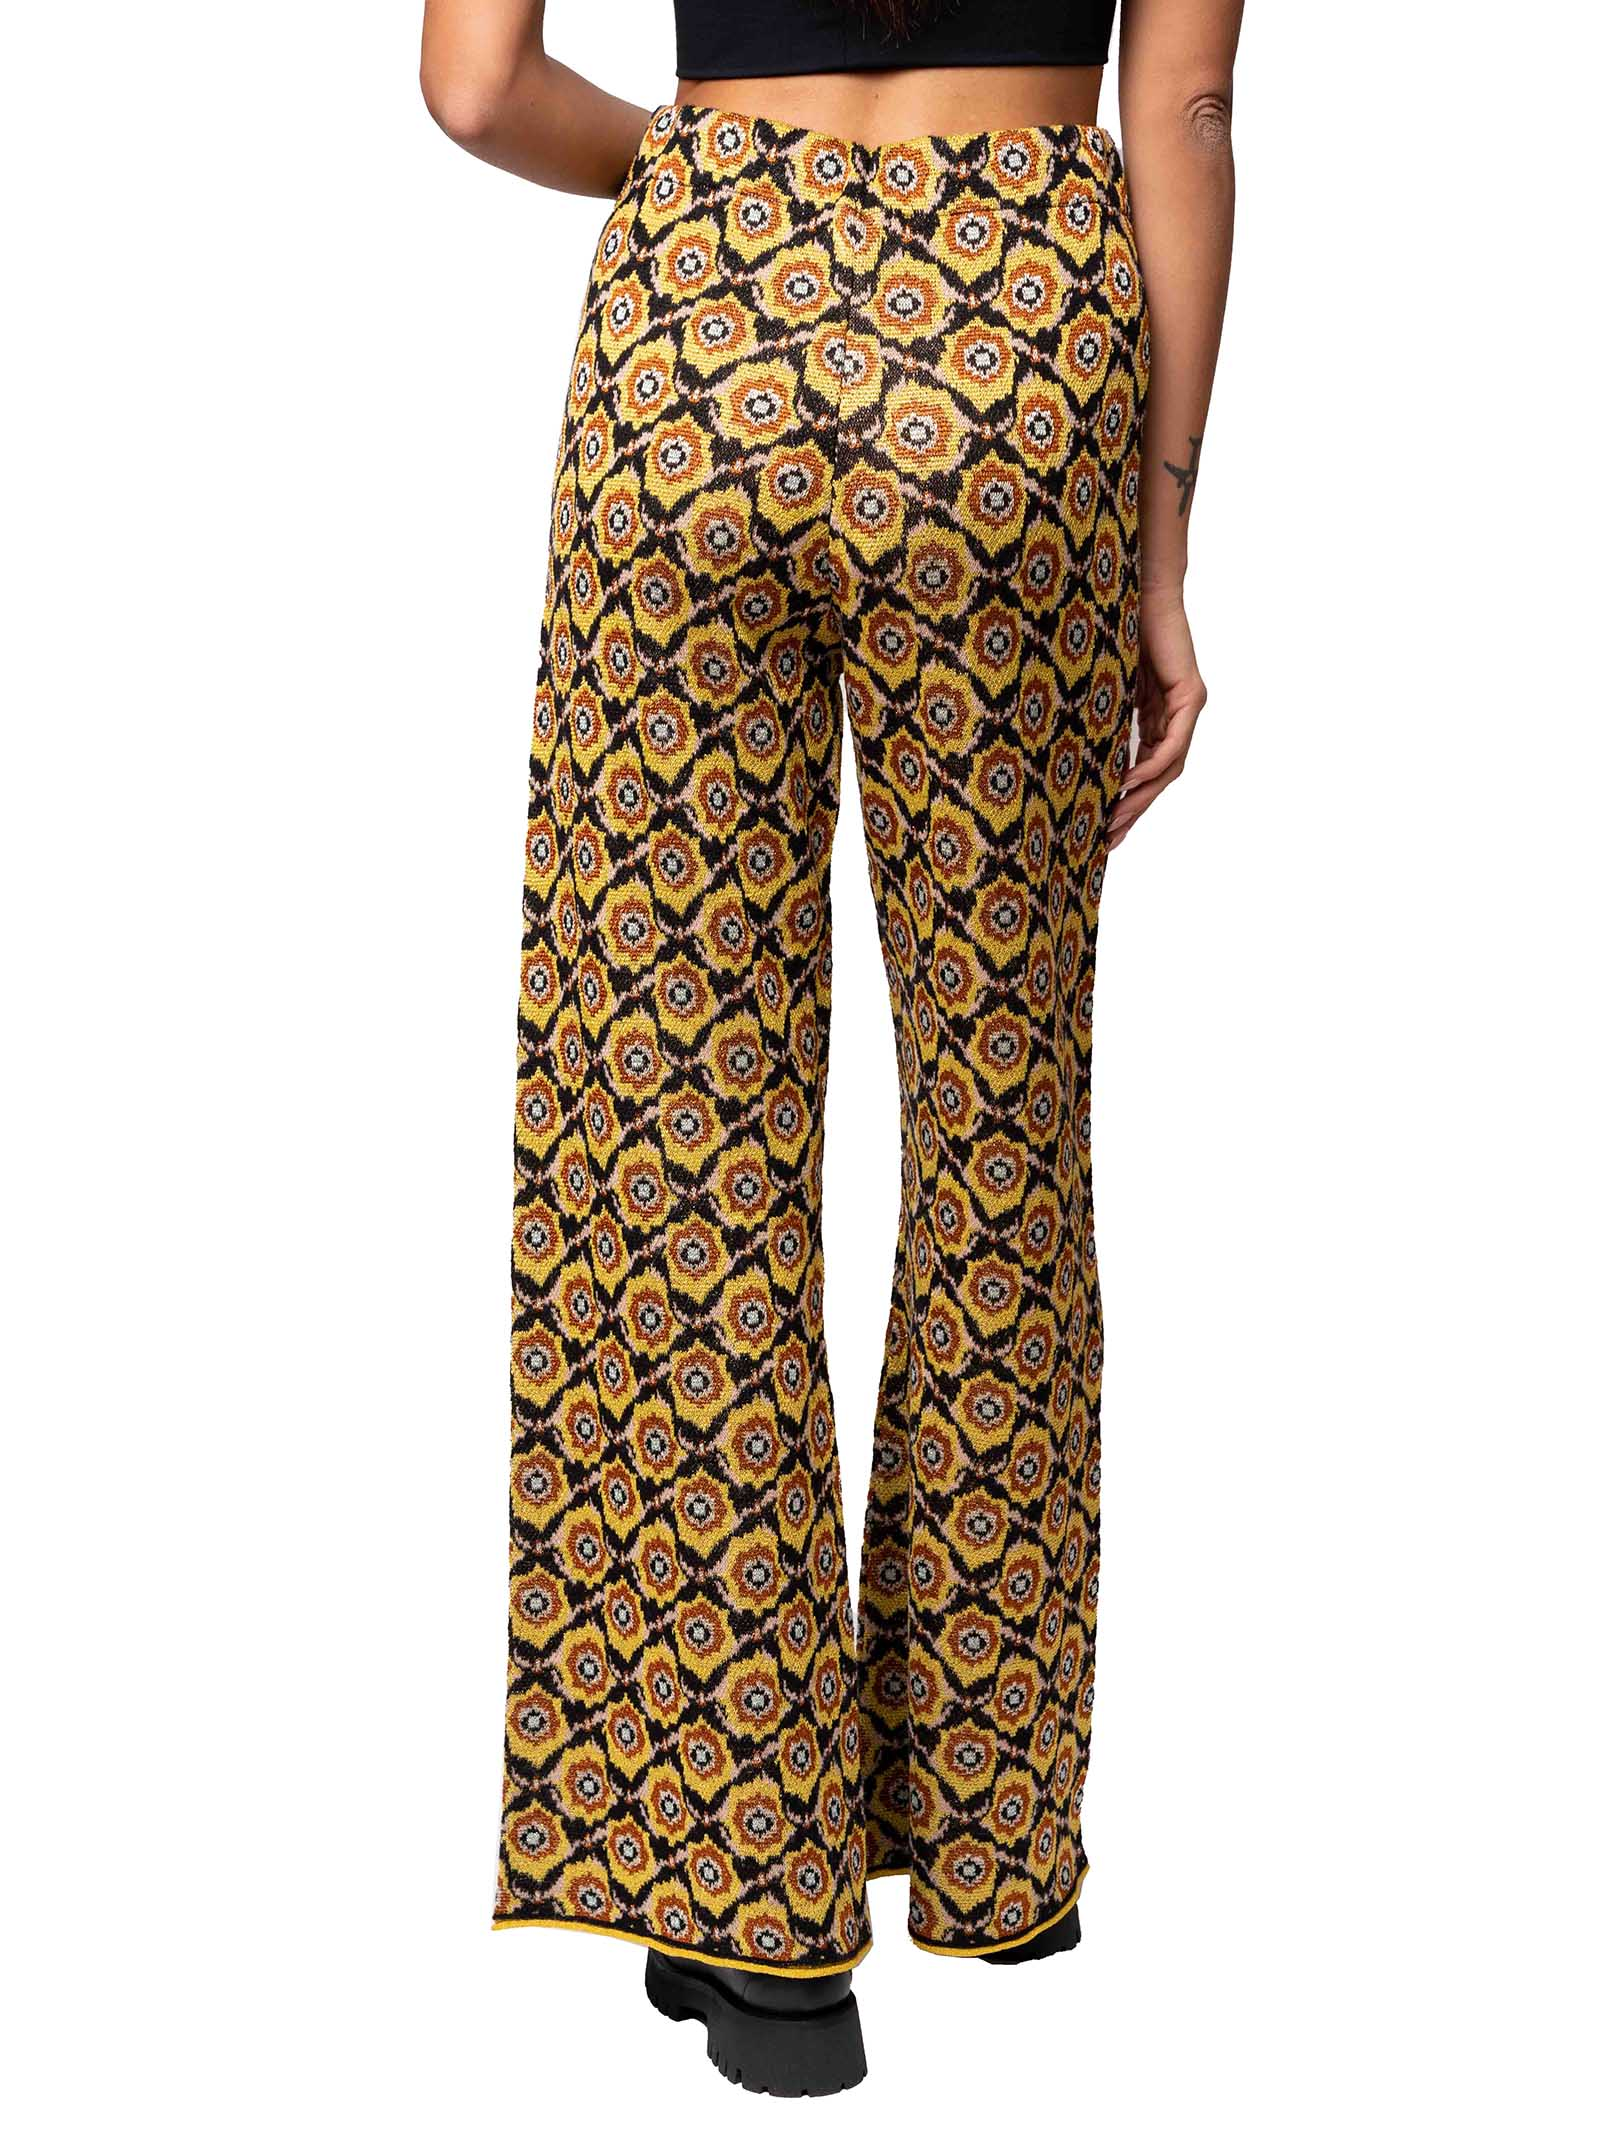 Women's Clothings Trousers Alchimia Jacquard in Knit Black of Viscose and Lurex Maliparmi   Skirts and Pants   JH746878071B2028